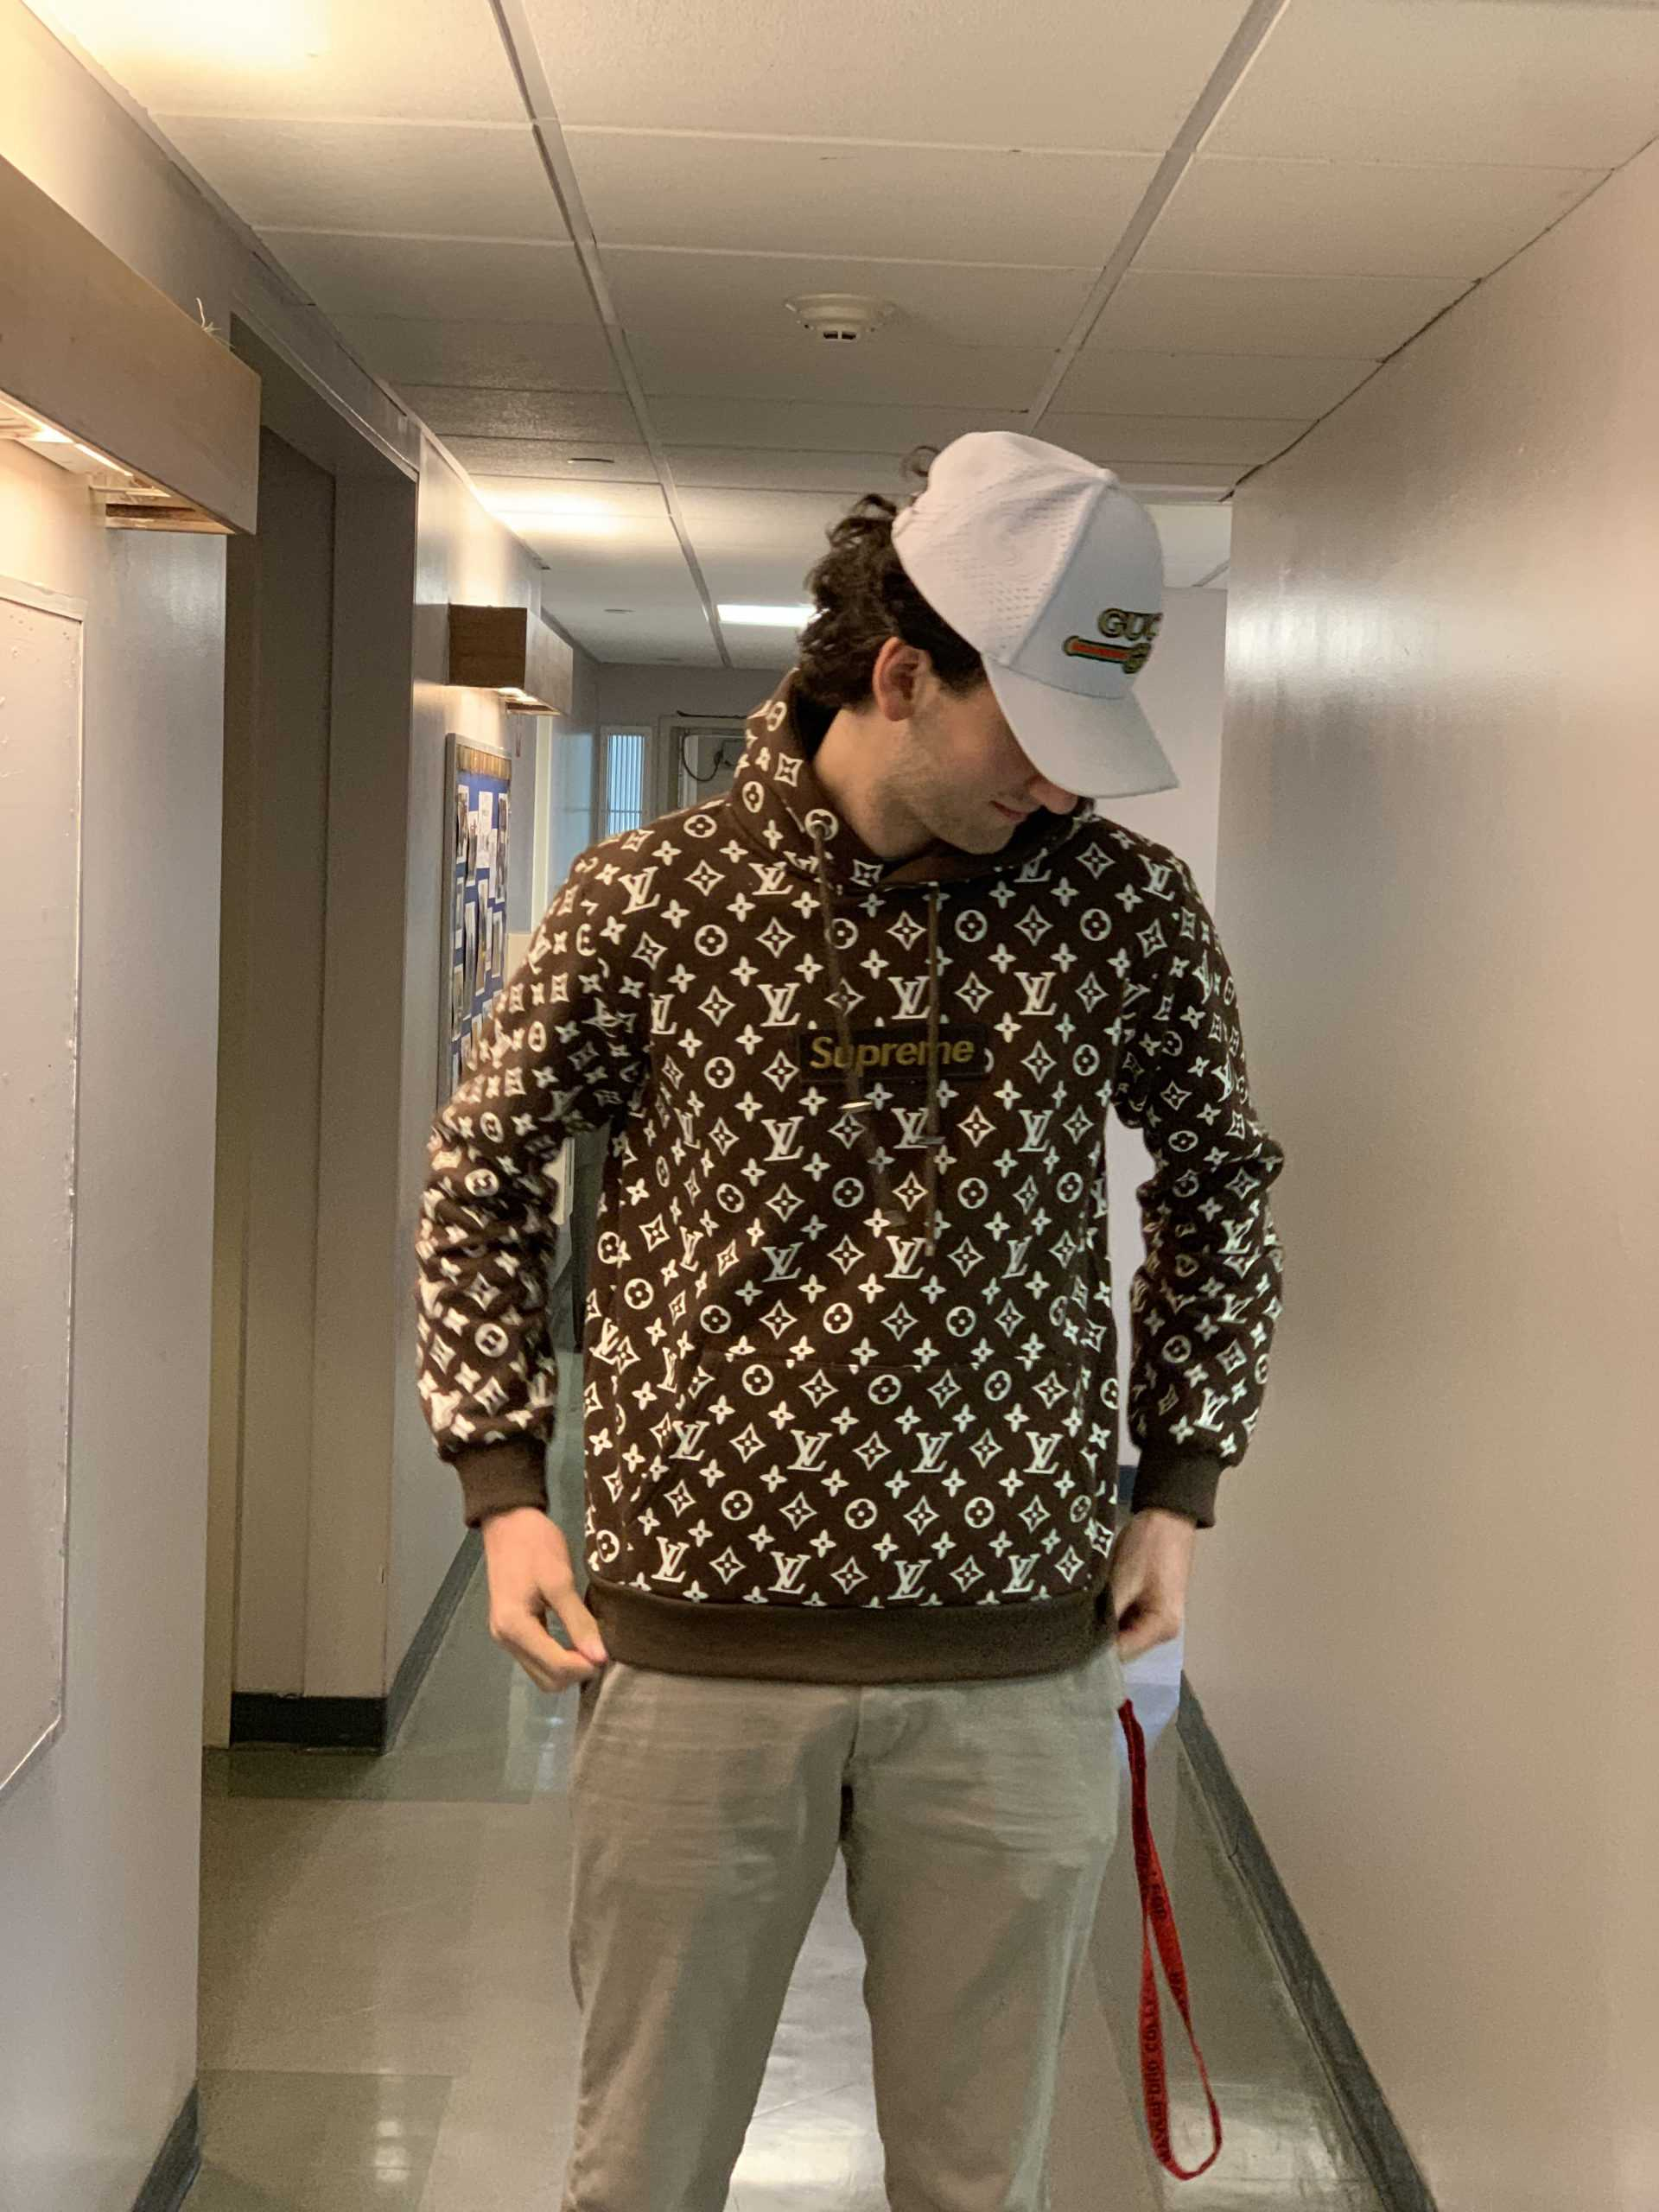 See+how+this+student+expresses+himself+through+fashion.%0A